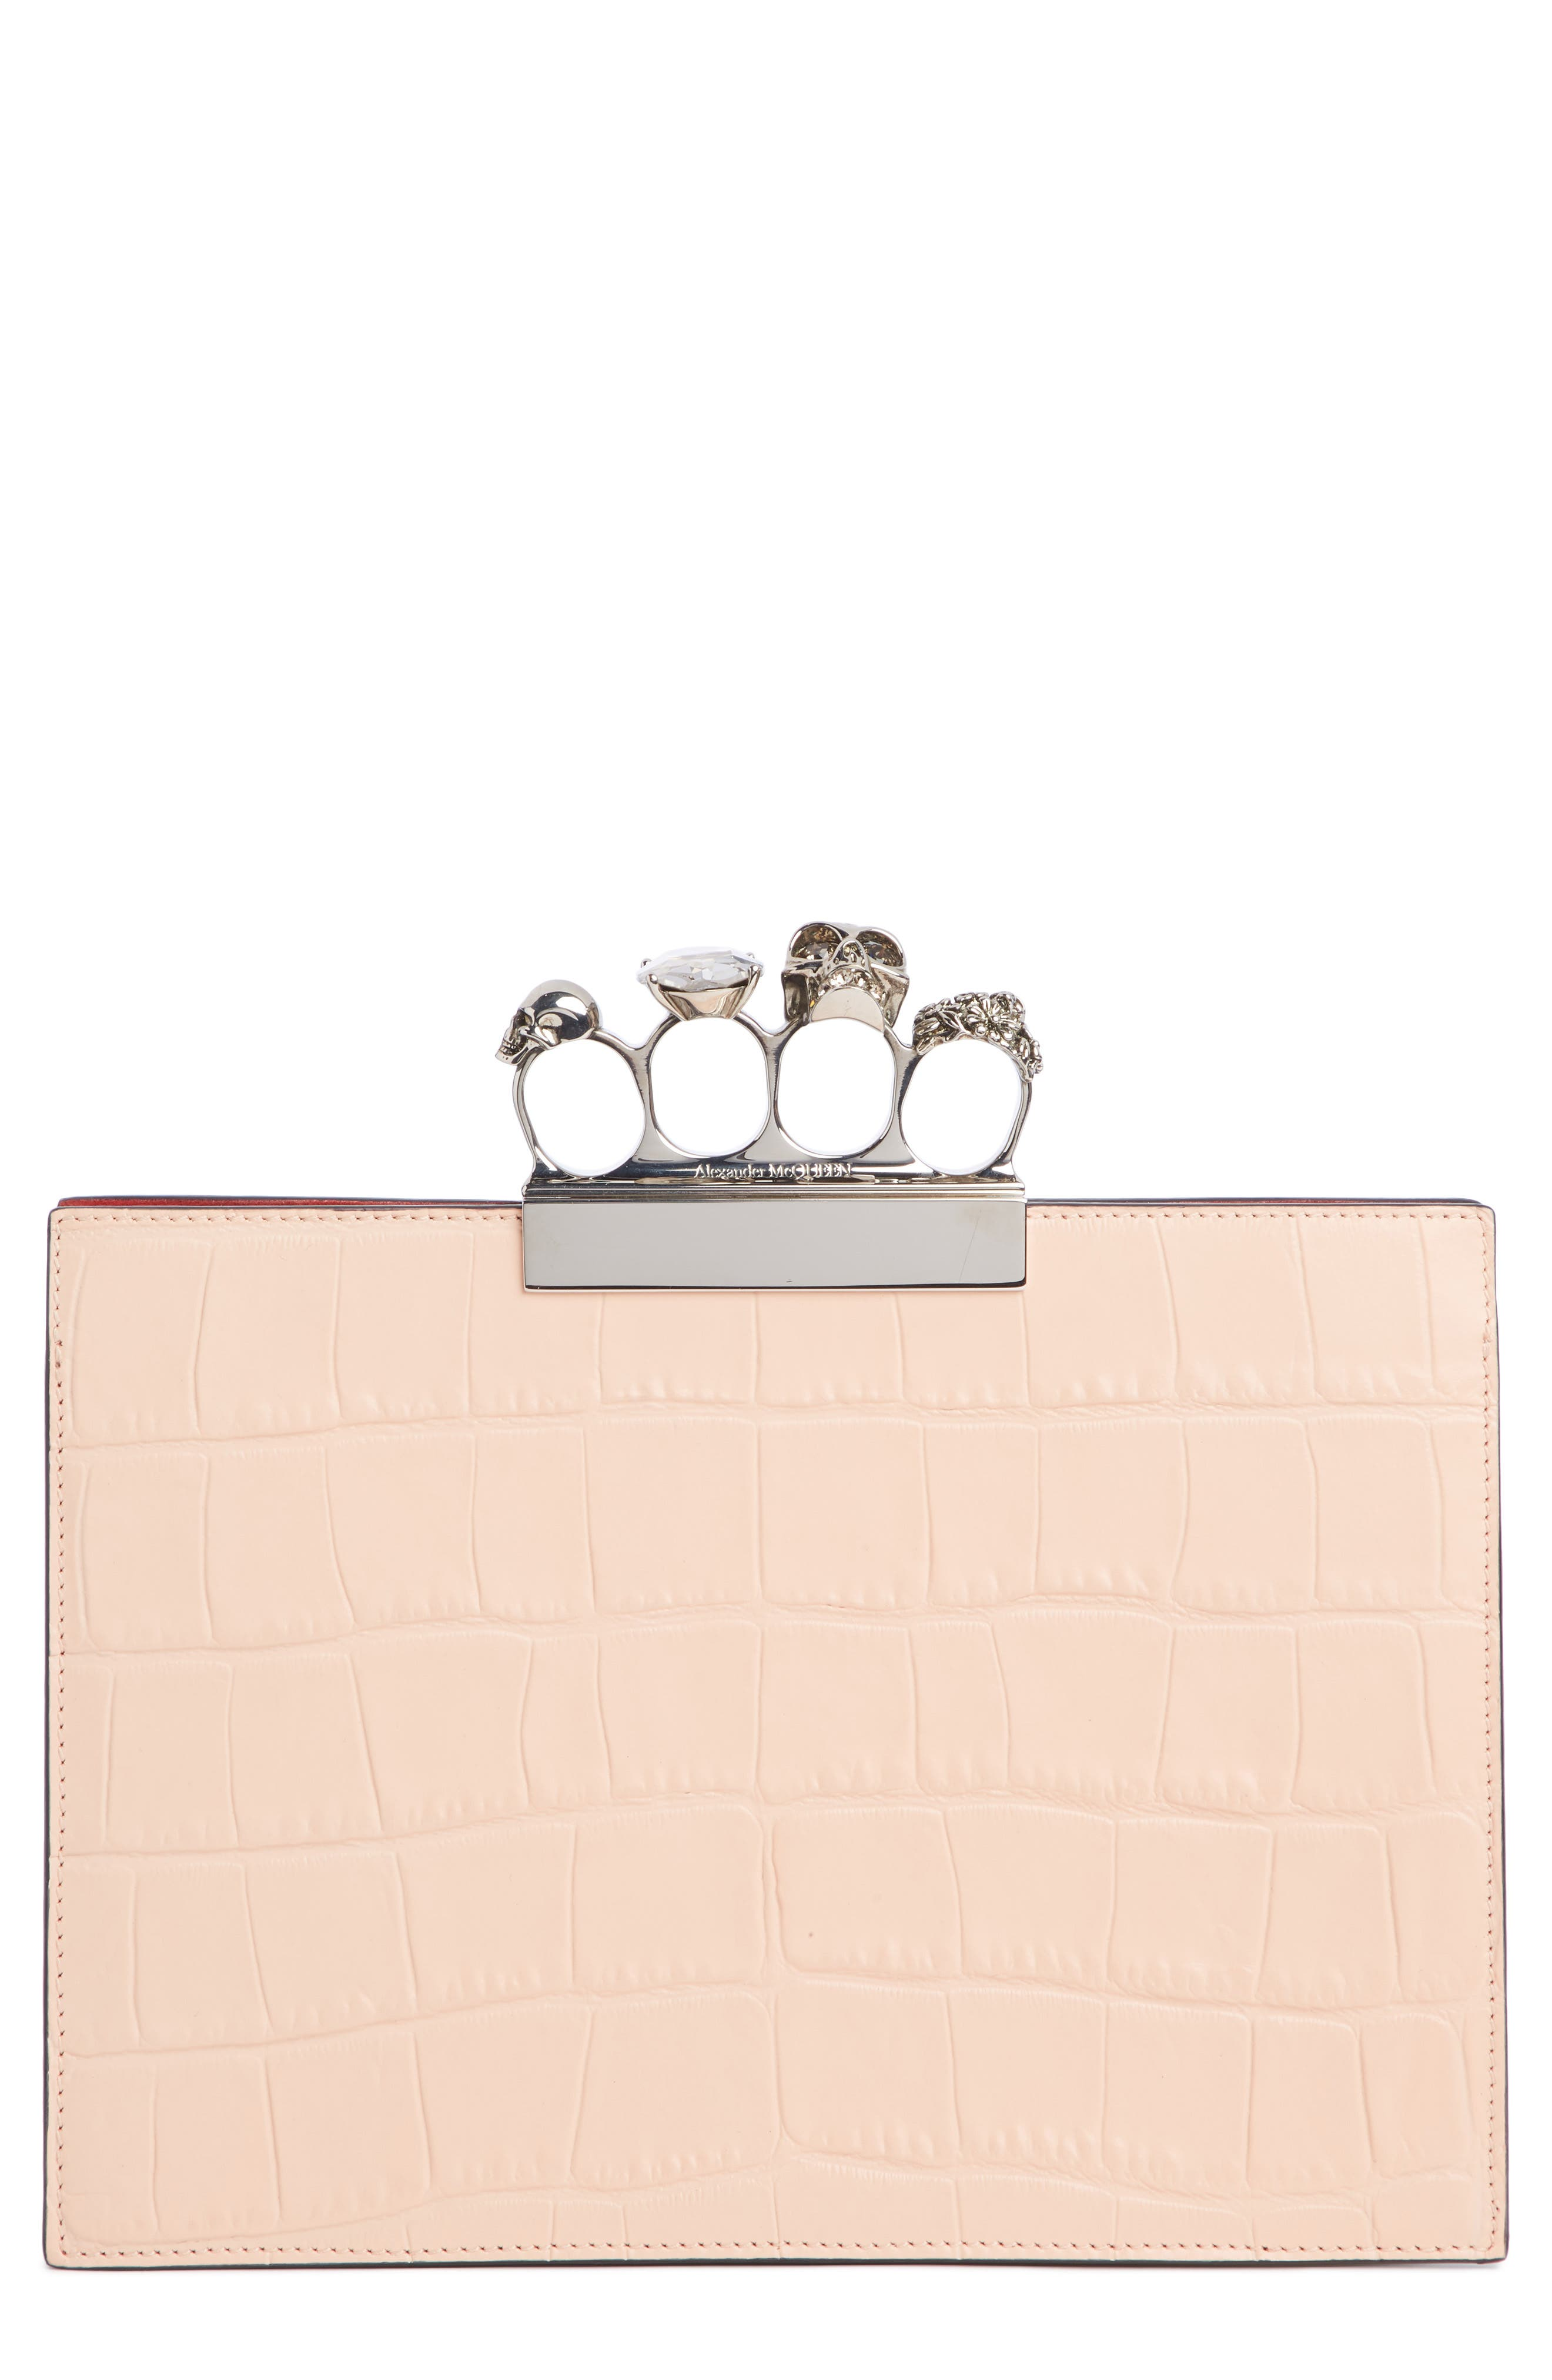 Croc Embossed Leather Knuckle Clutch,                             Main thumbnail 1, color,                             COLURIE/ IVORY